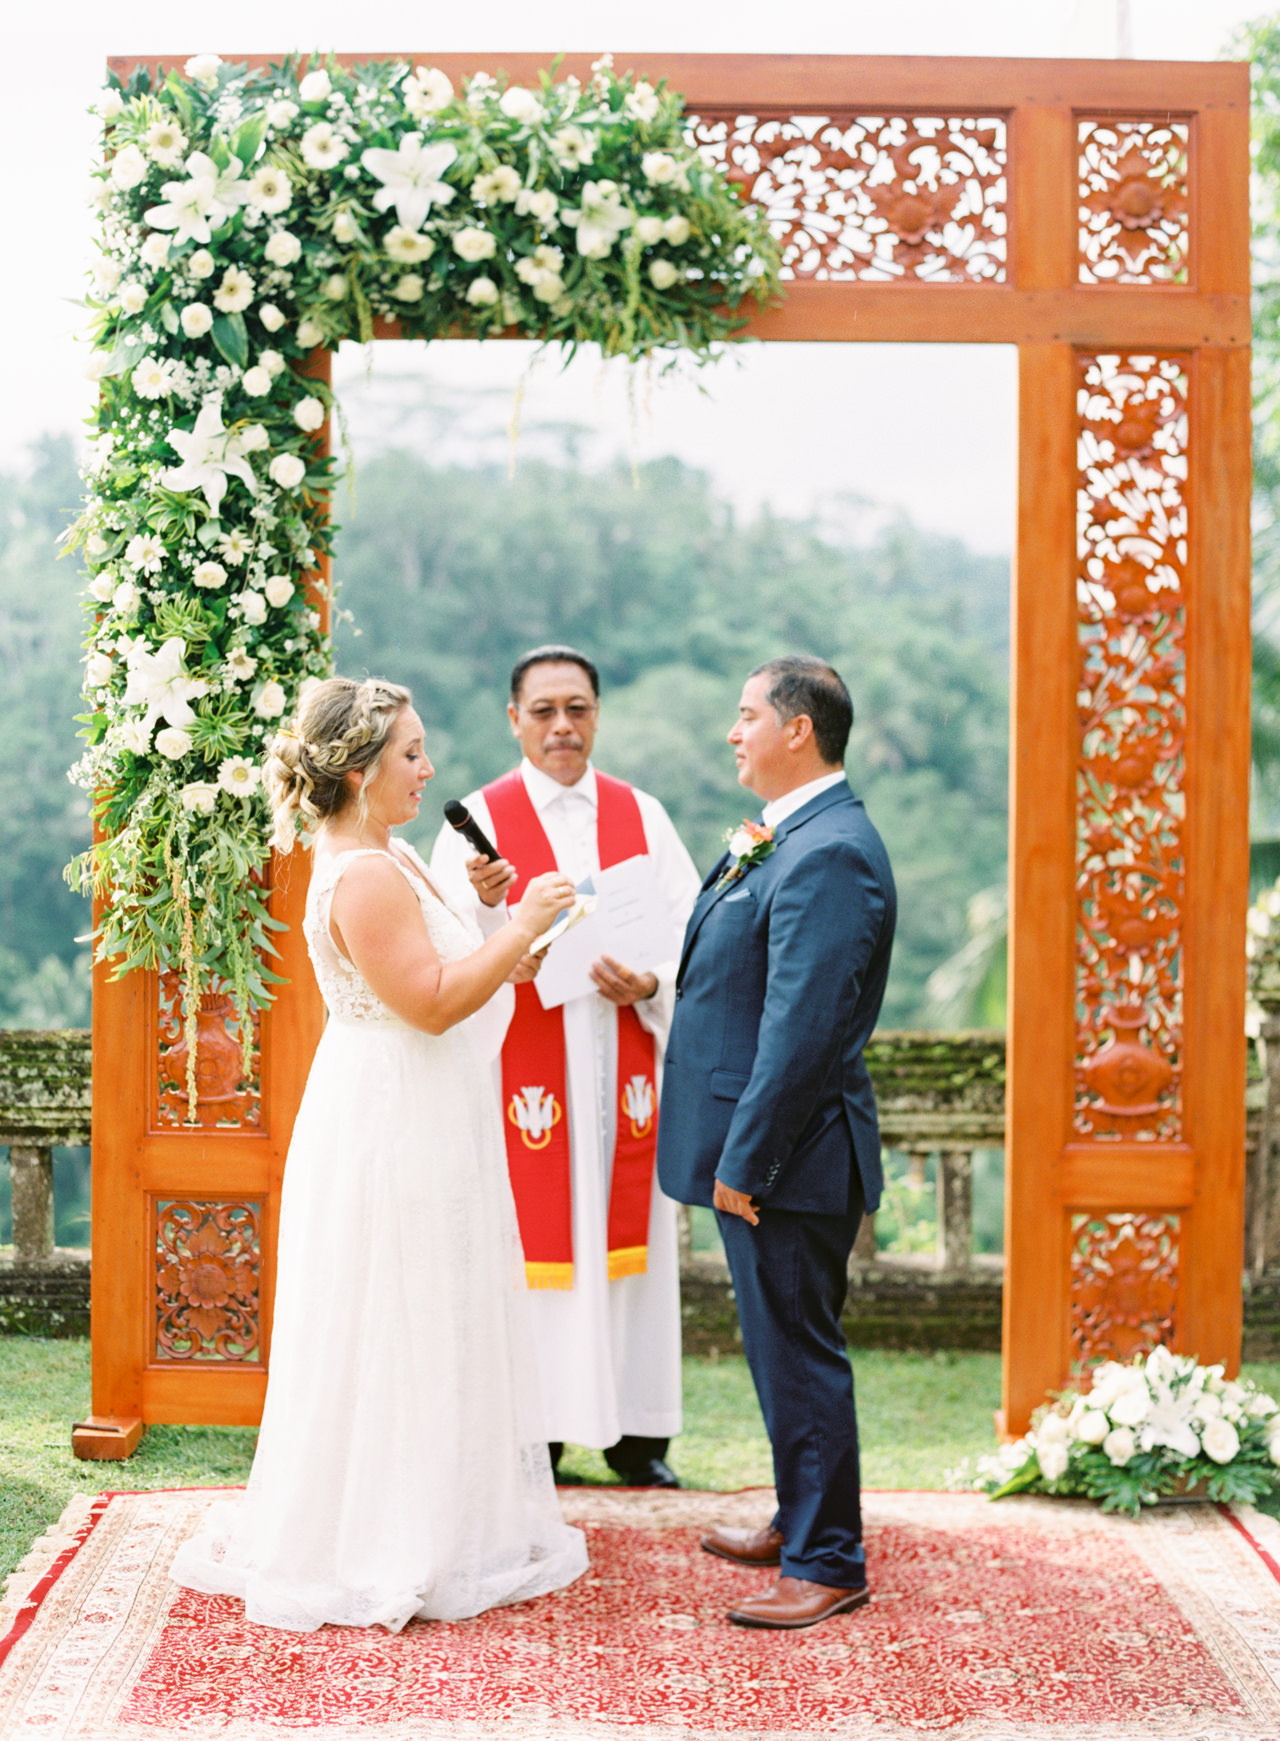 K&F: Bali Wedding at Puri Wulandari Ubud 20